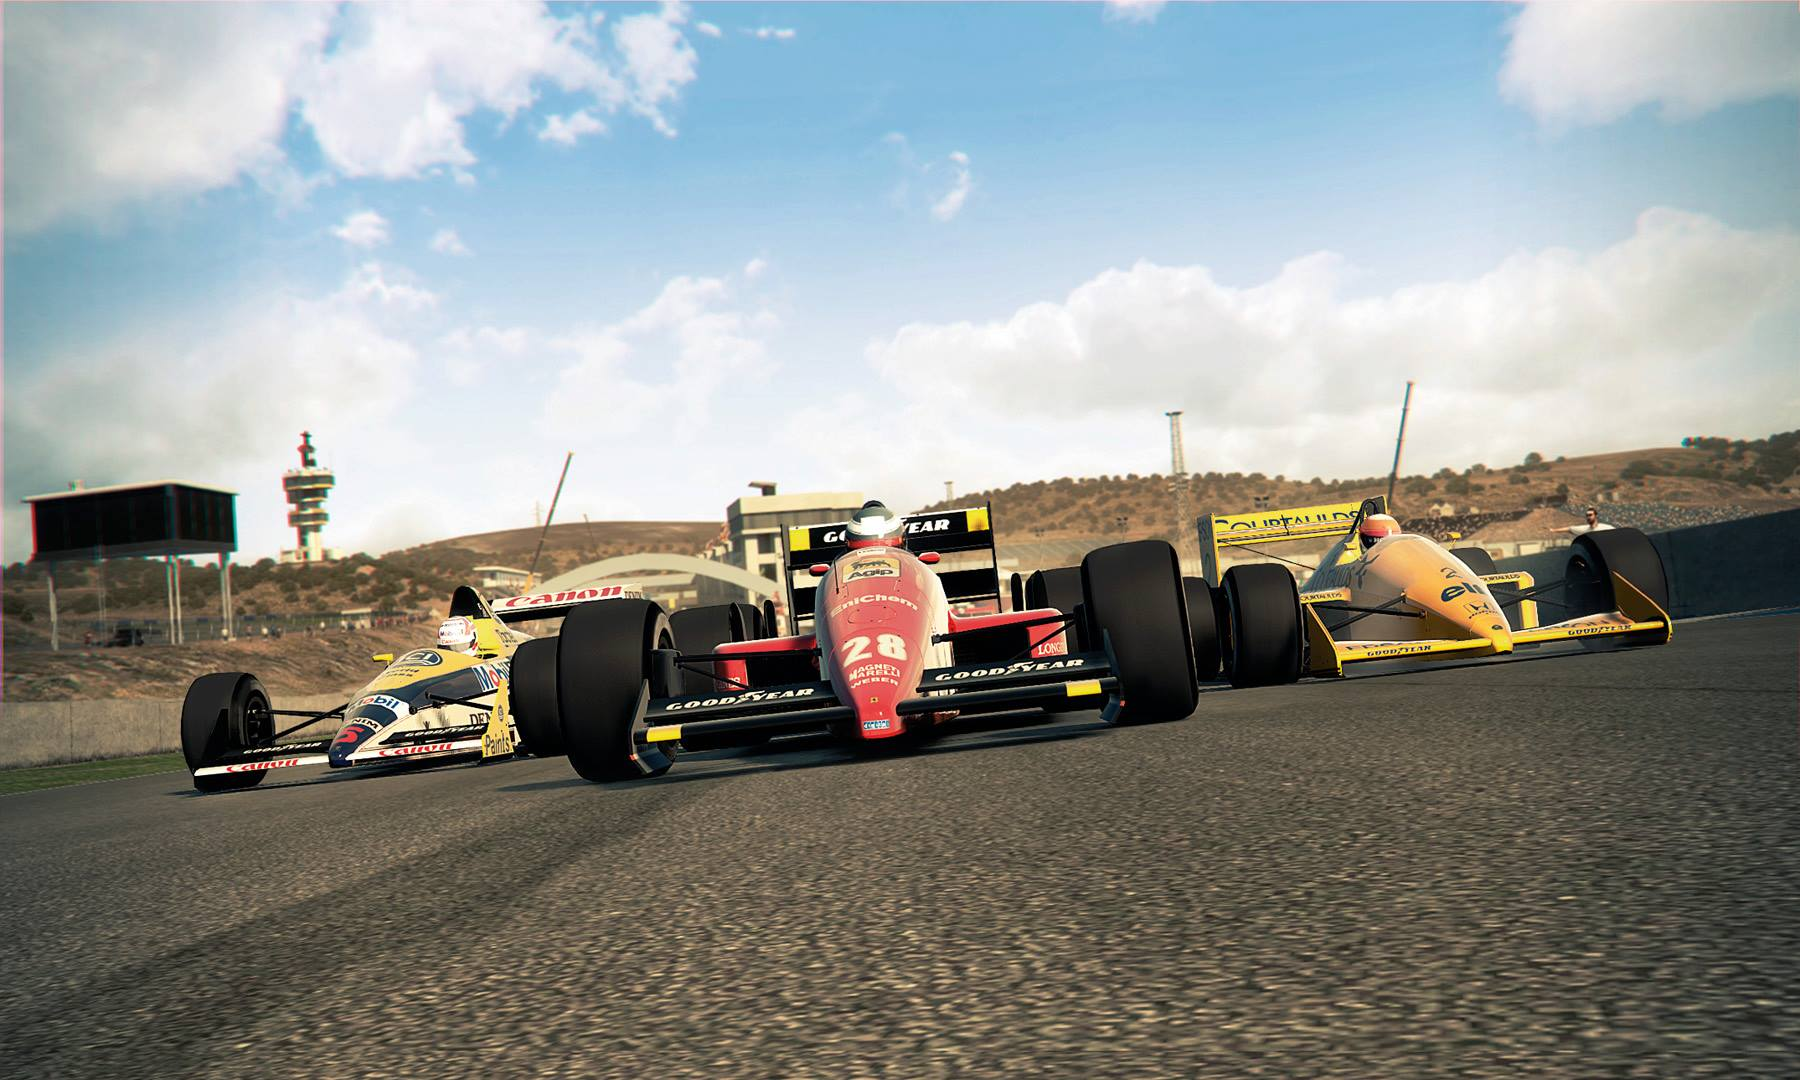 http://games.reveur.de/images/screenshots/f12013-1377174647_5216047744662.jpg